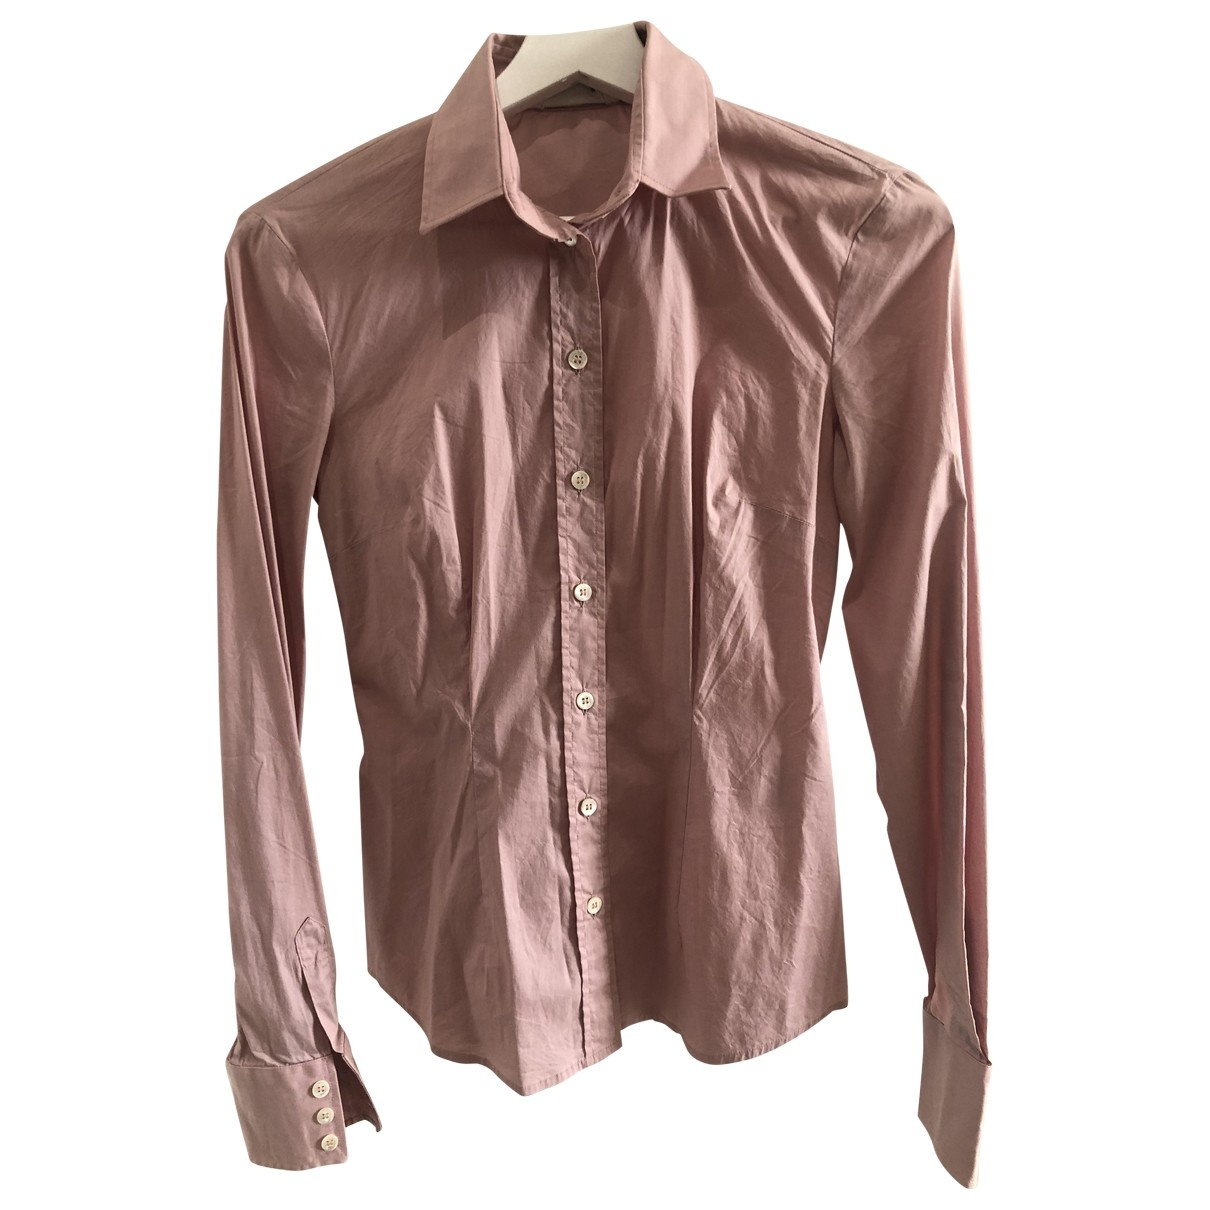 D&g \N Pink Cotton  top for Women 38 IT